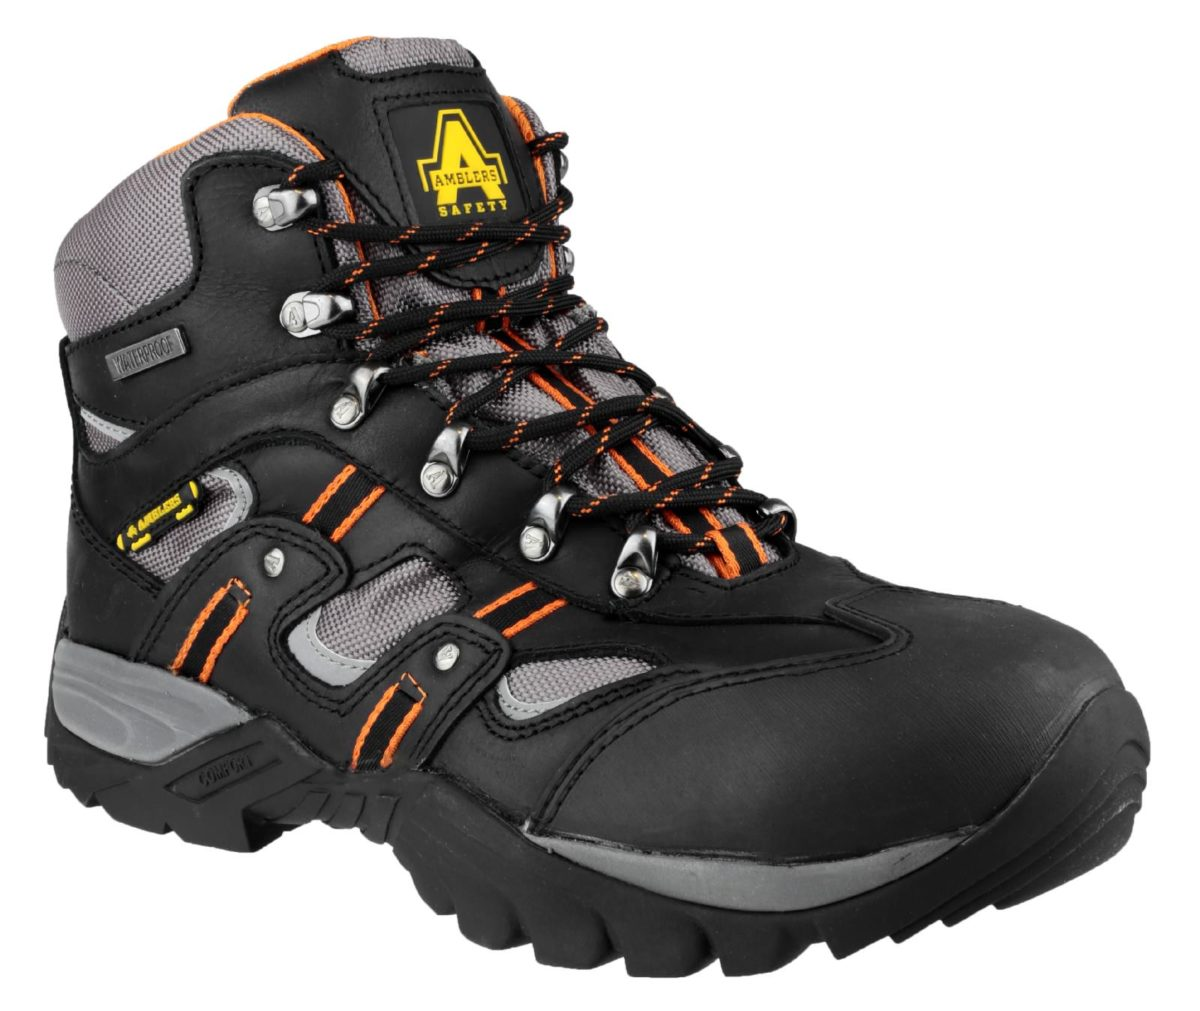 Amblers FS193 Waterproof Hiker Safety Boot